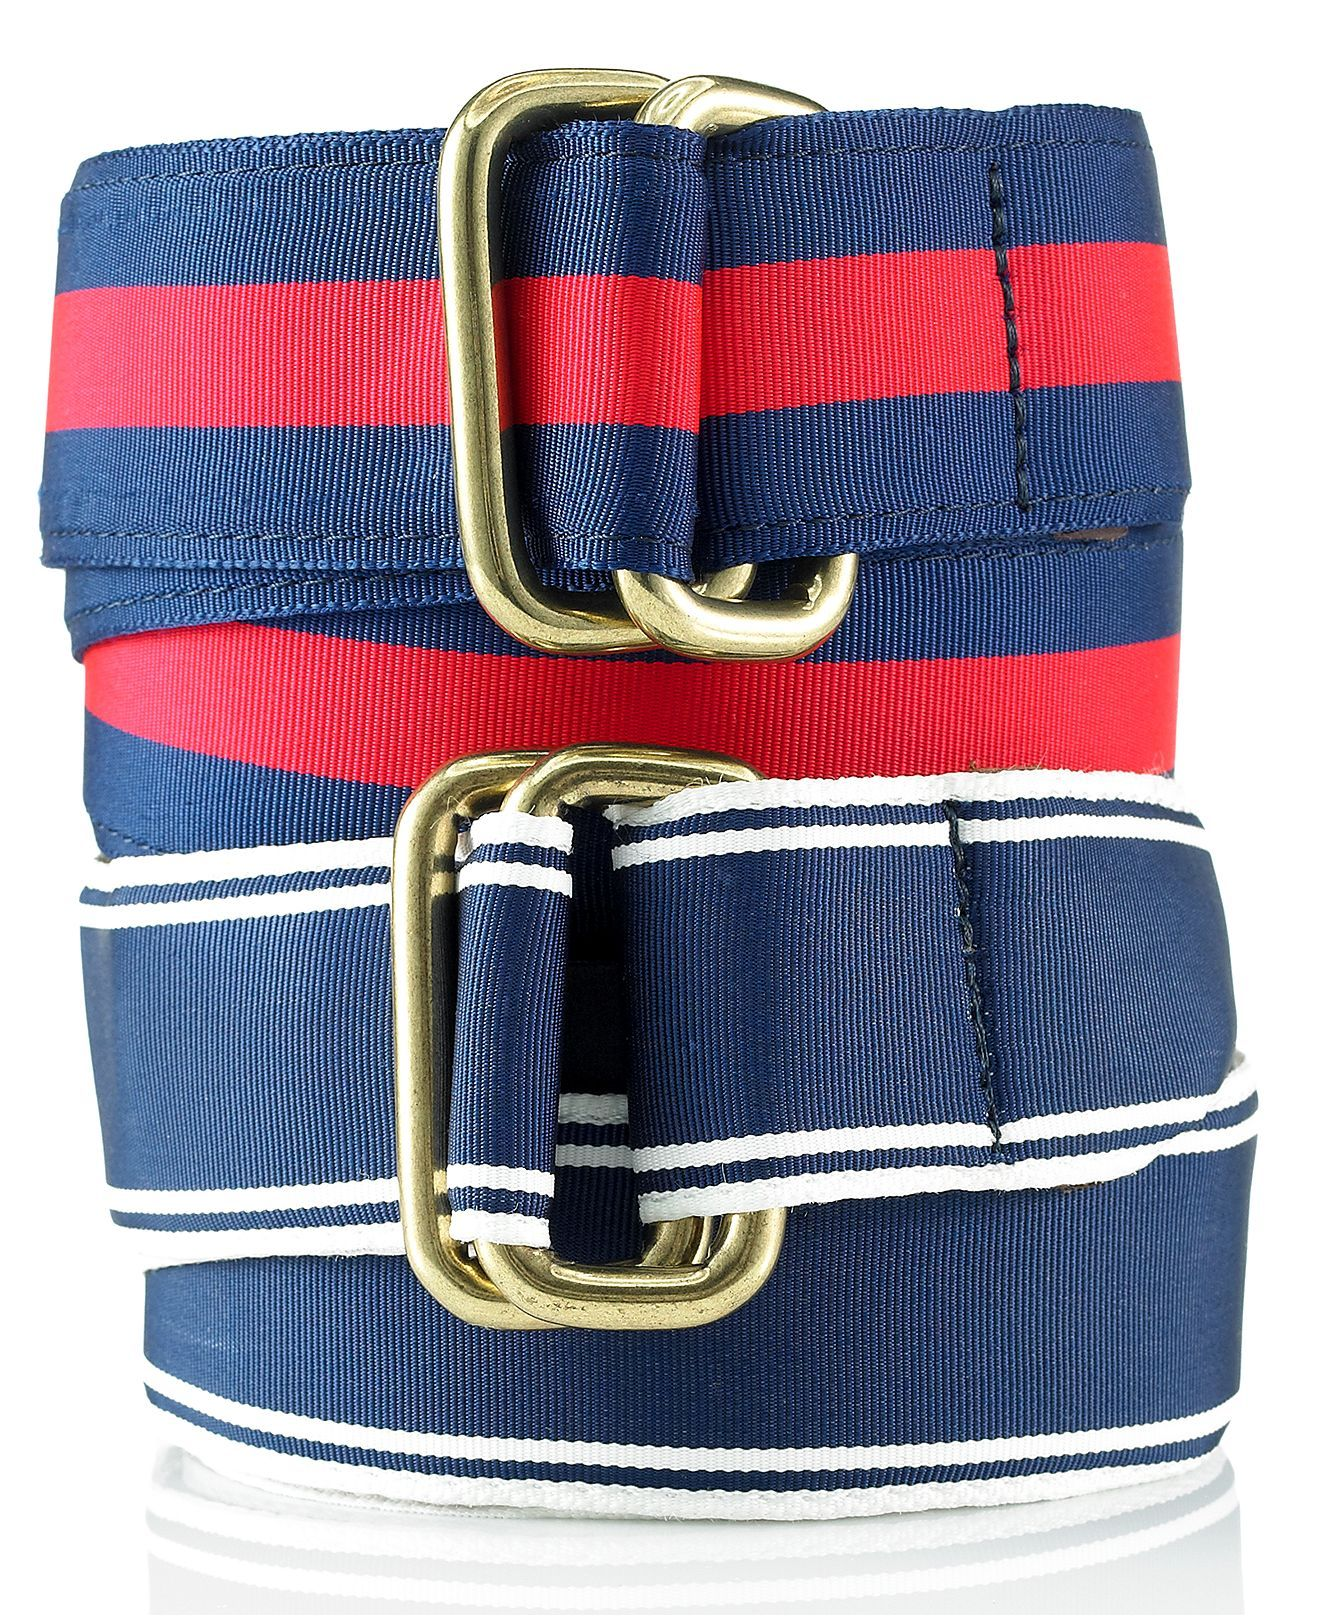 9a4e9b4a Tommy Hilfiger Belt, Stitched Double D Ring | Men's Spring ...